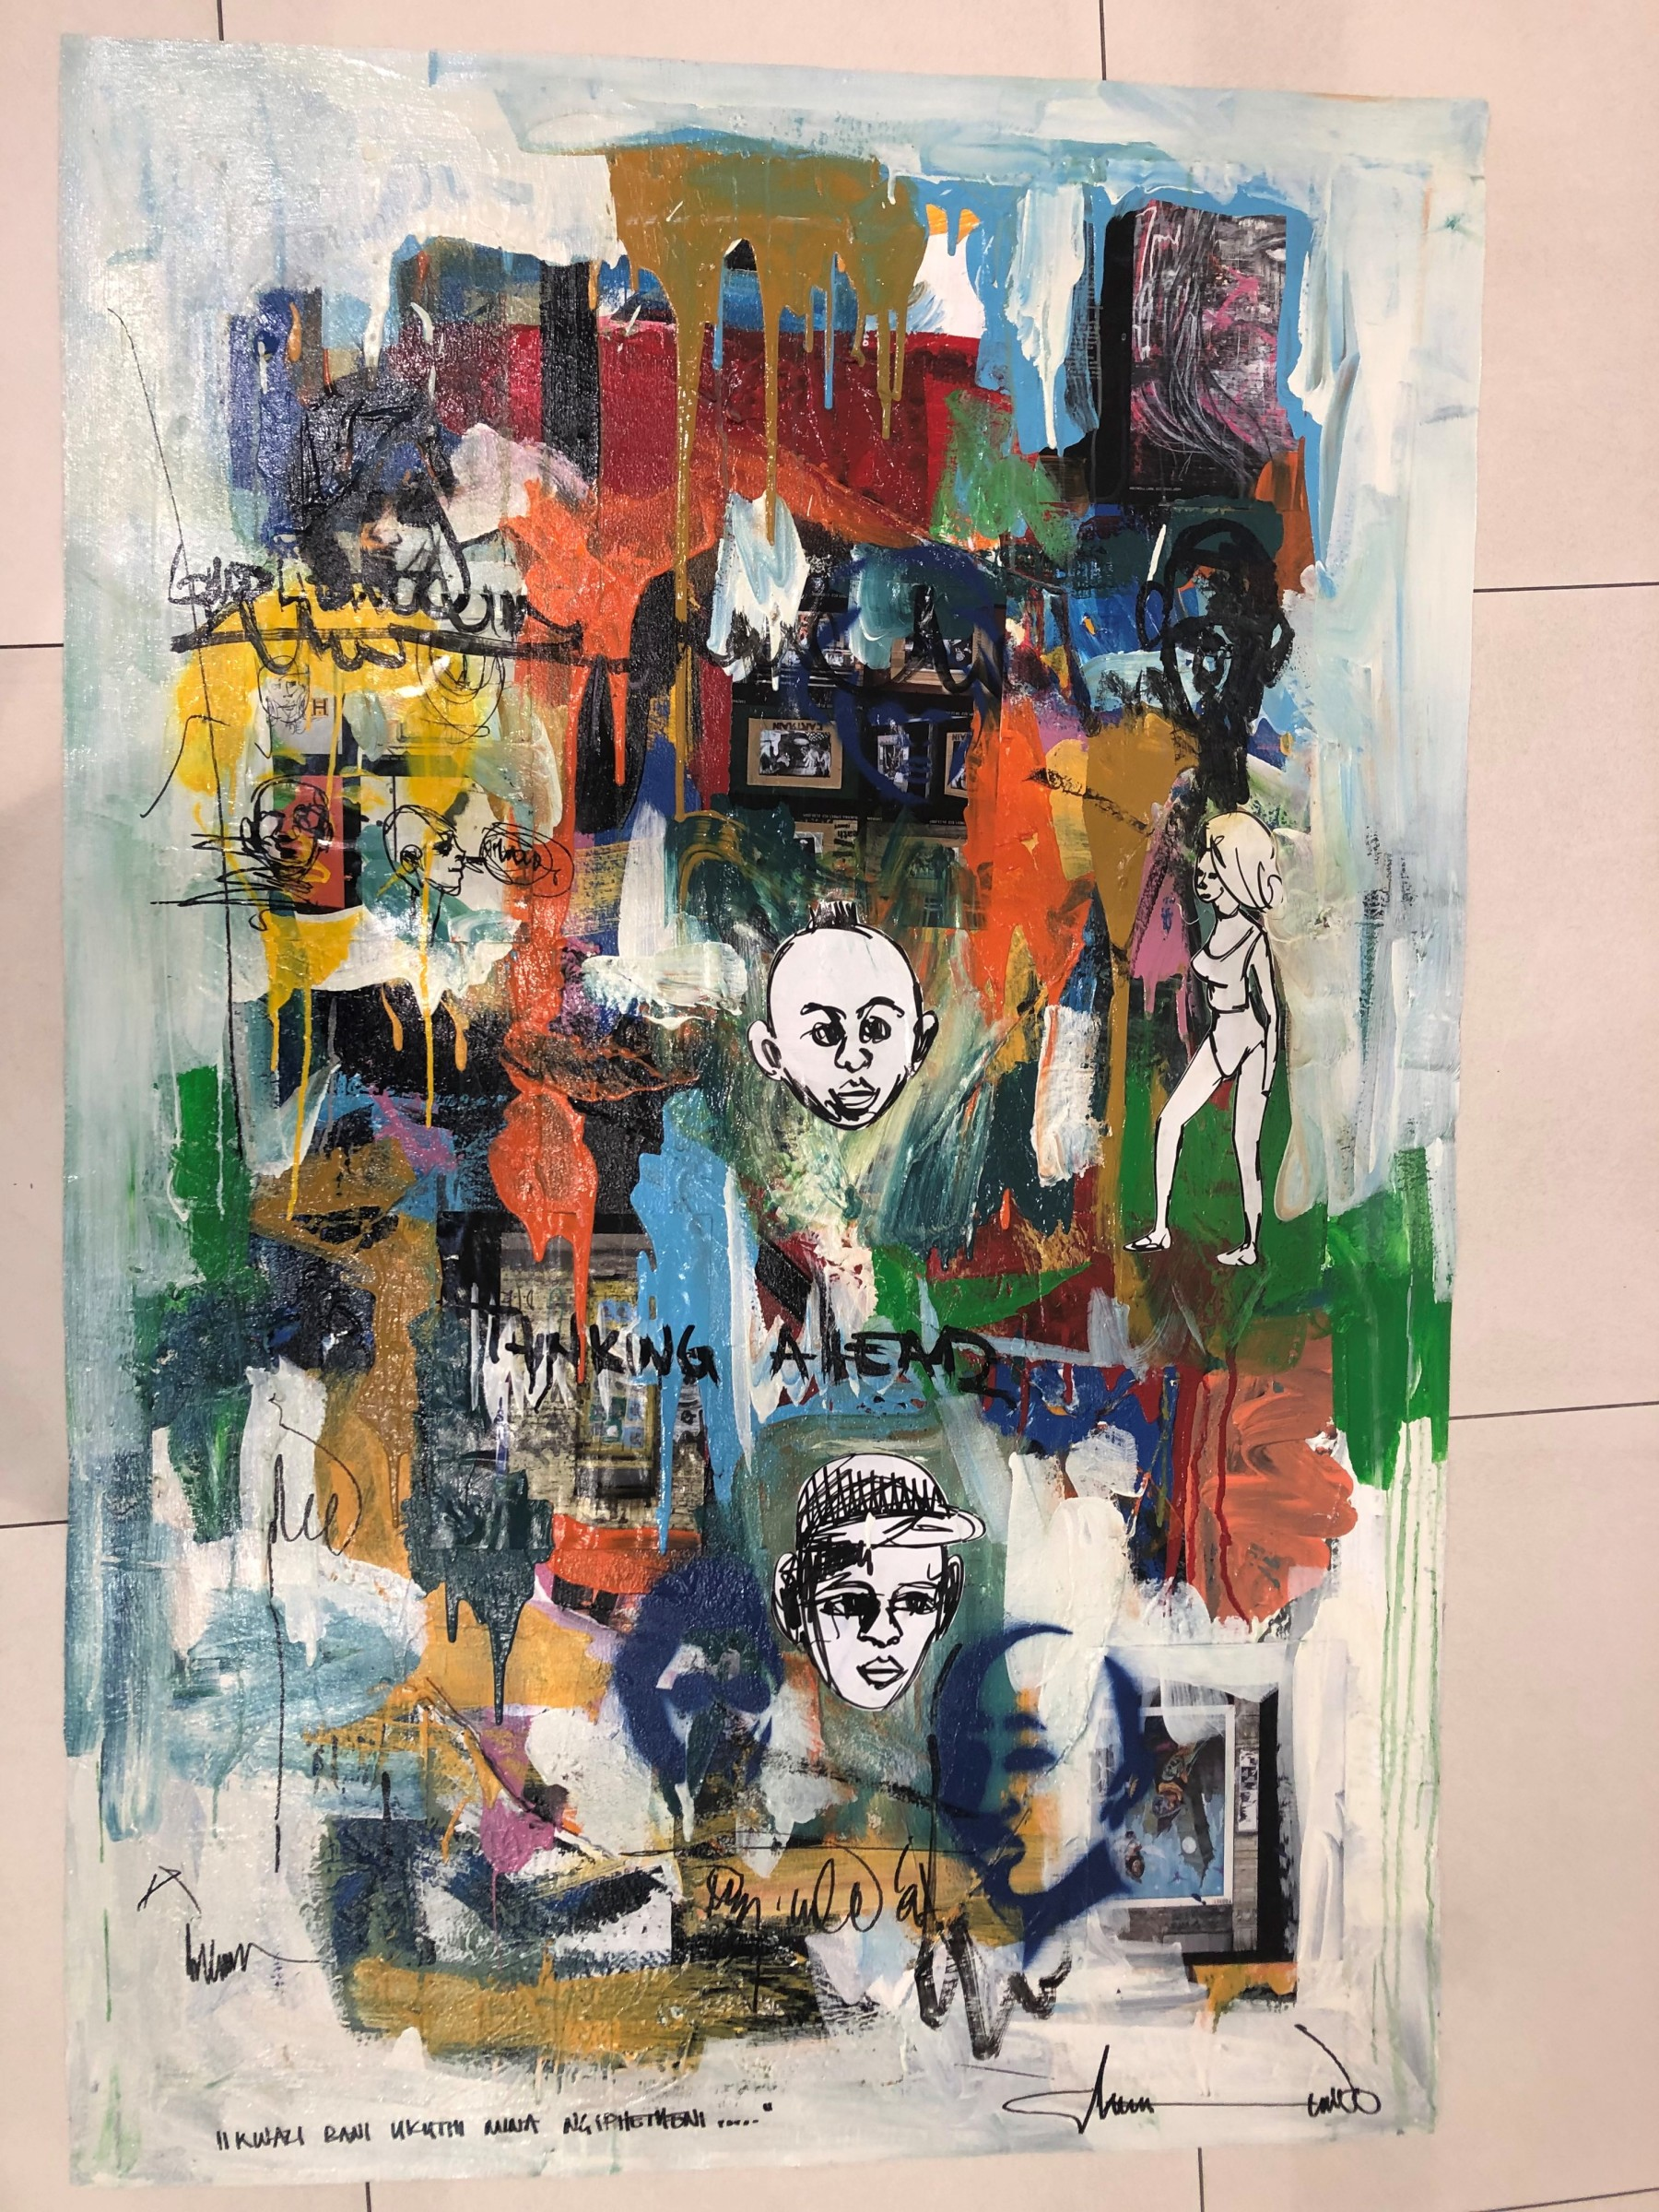 "<span class=""link fancybox-details-link""><a href=""/artists/83/series/other-works/7608-thando-ngwenya-kwazi-bani-ukuthi-mina-ngibhetheni-nobody-knows-what-2019/"">View Detail Page</a></span><div class=""artist""><strong>Thando Ngwenya</strong></div> <div class=""title""><em>Kwazi Bani Ukuthi Mina Ngibhetheni (Nobody Knows What I Have Inside)</em>, 2019</div> <div class=""medium"">Mixed Media on Canvas</div> <div class=""dimensions"">148 x 98.5 cm<br /> </div>"